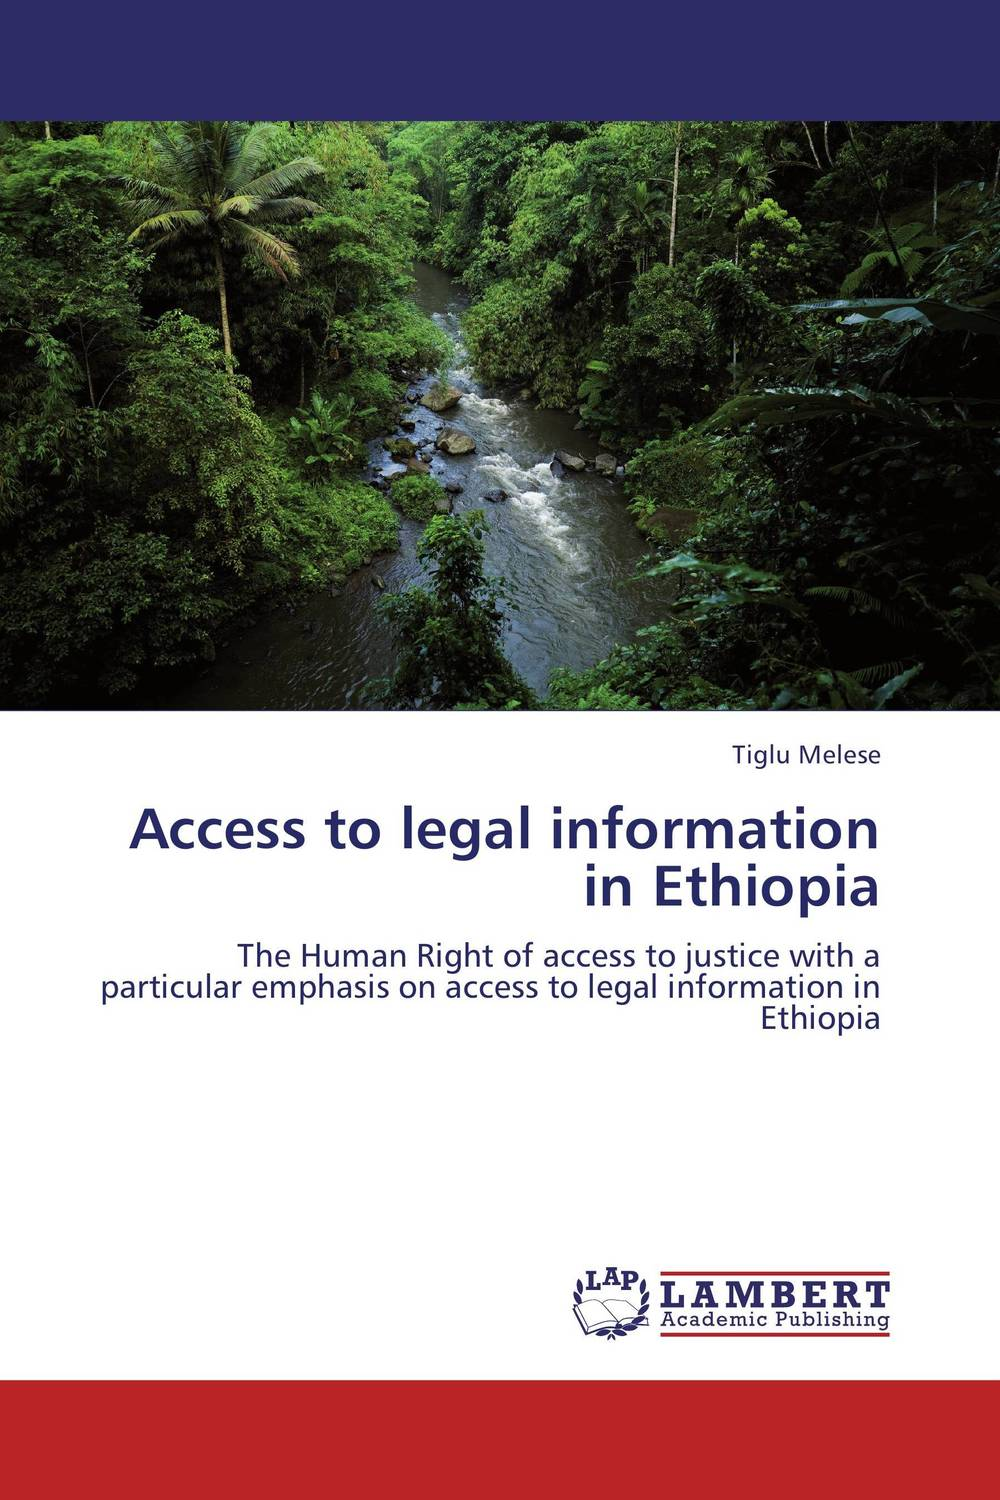 цена на Access to legal information in Ethiopia